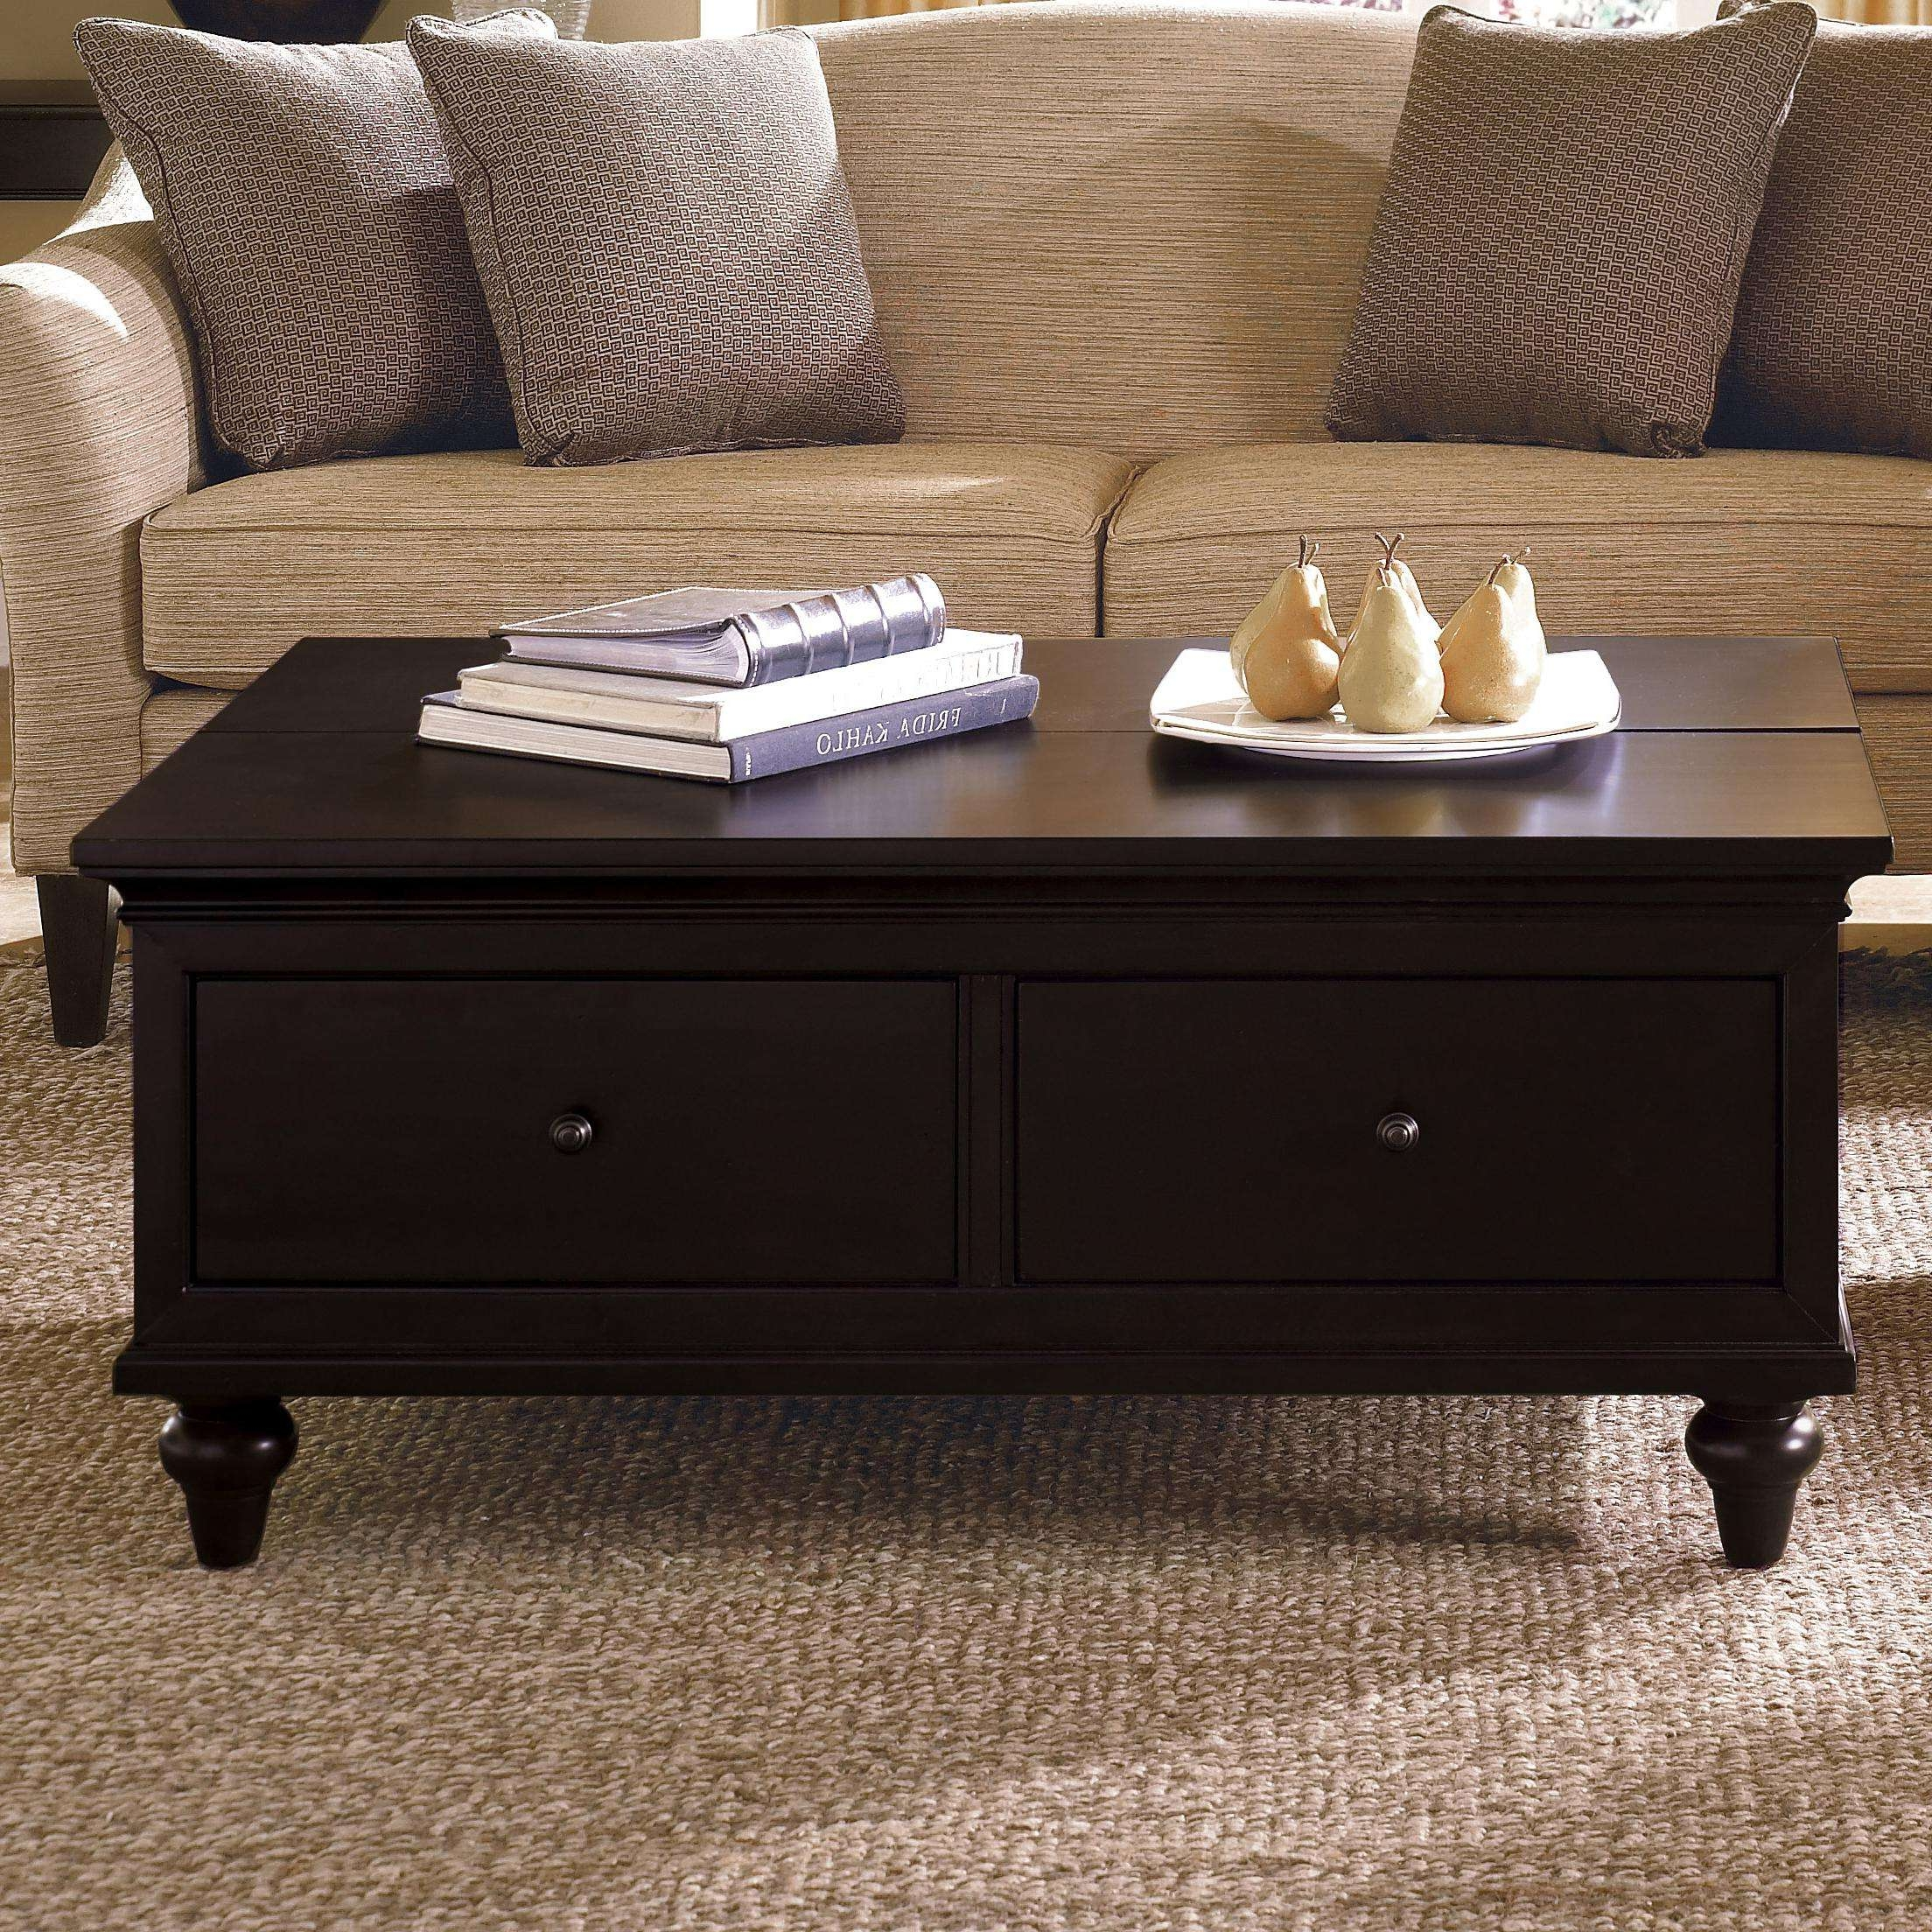 Coffee Table, Coffee Table Lift Up Design With Drawers And Added Throughout Preferred Cream Coffee Tables With Drawers (View 3 of 20)